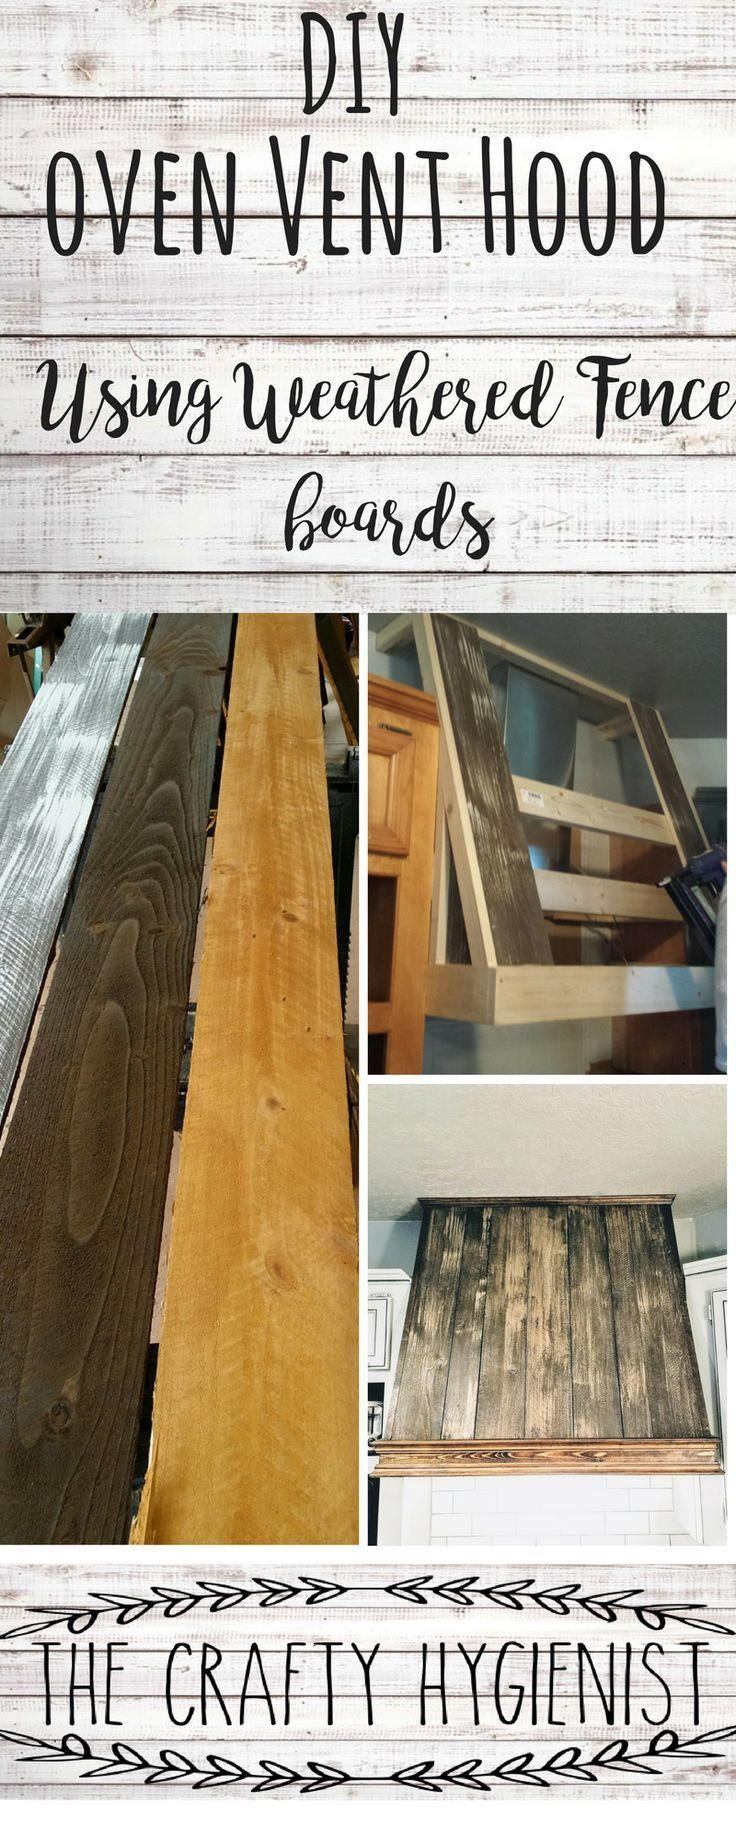 distressed hardwood flooring diy of 20 diy weathered wood on a budget economyinnbeebe com intended for diy oven vent hood diy oven vent diy oven vent cover diy oven vent makeover diy